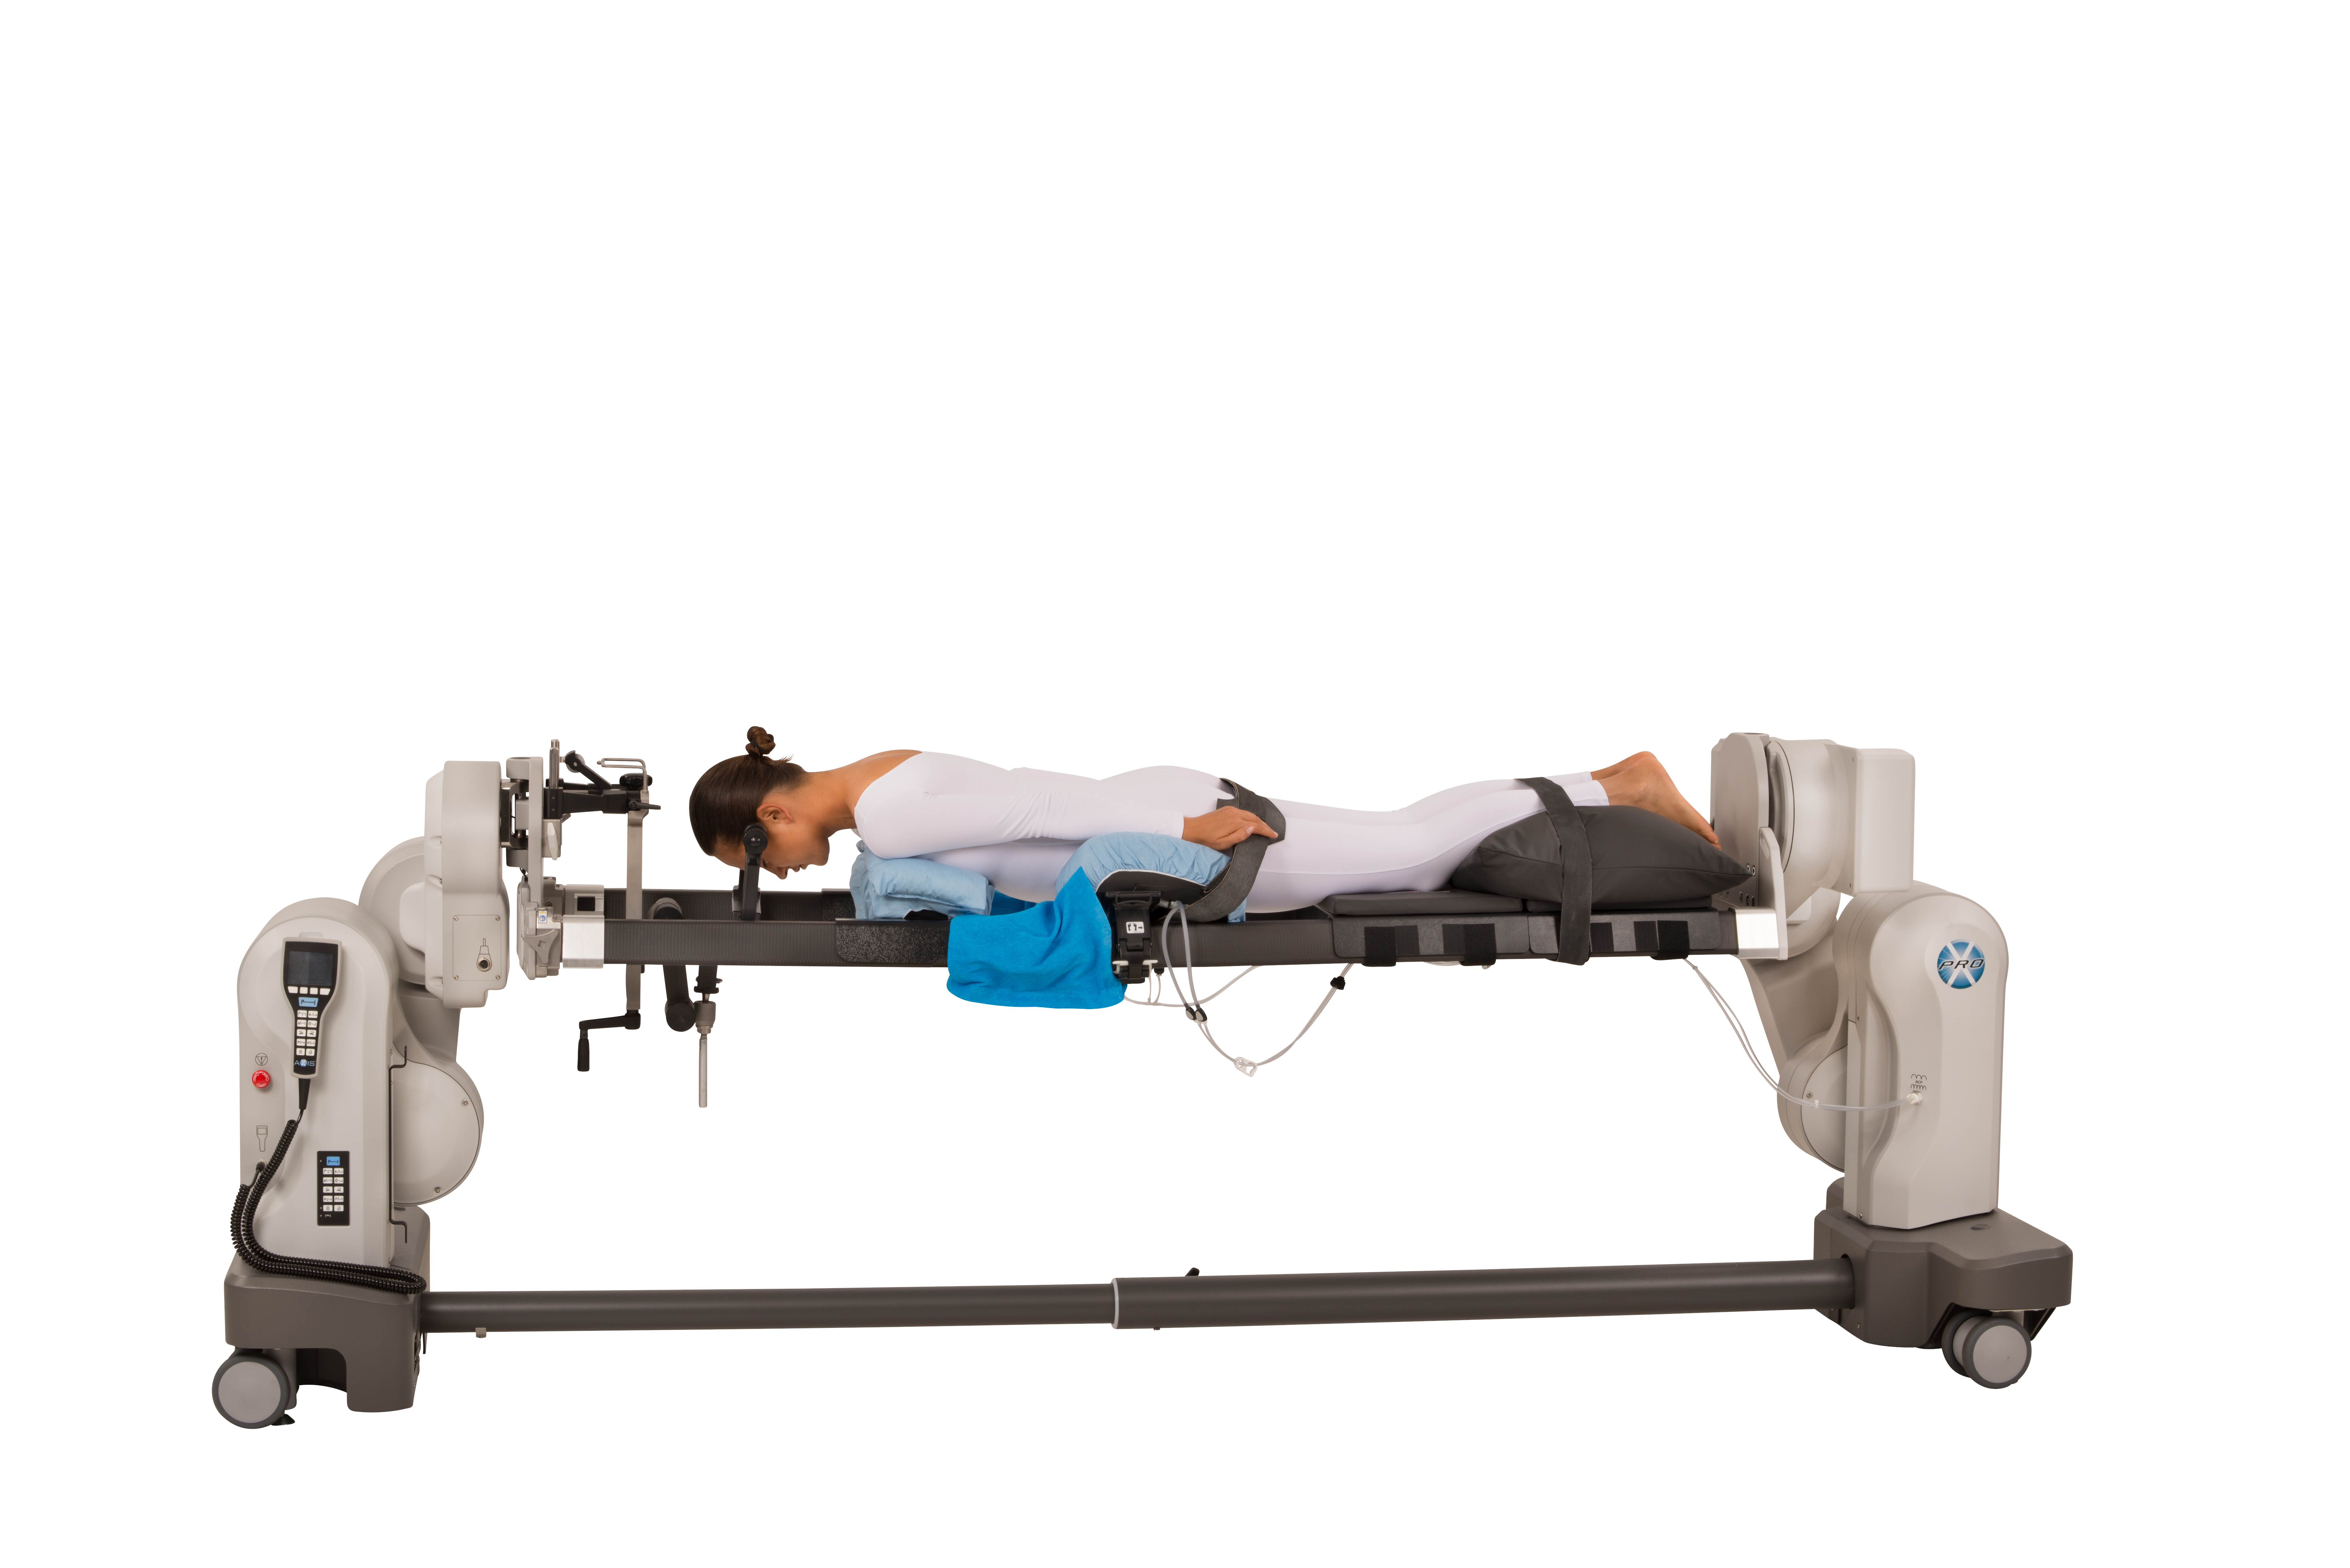 surgical supine positions - HD7360×4912